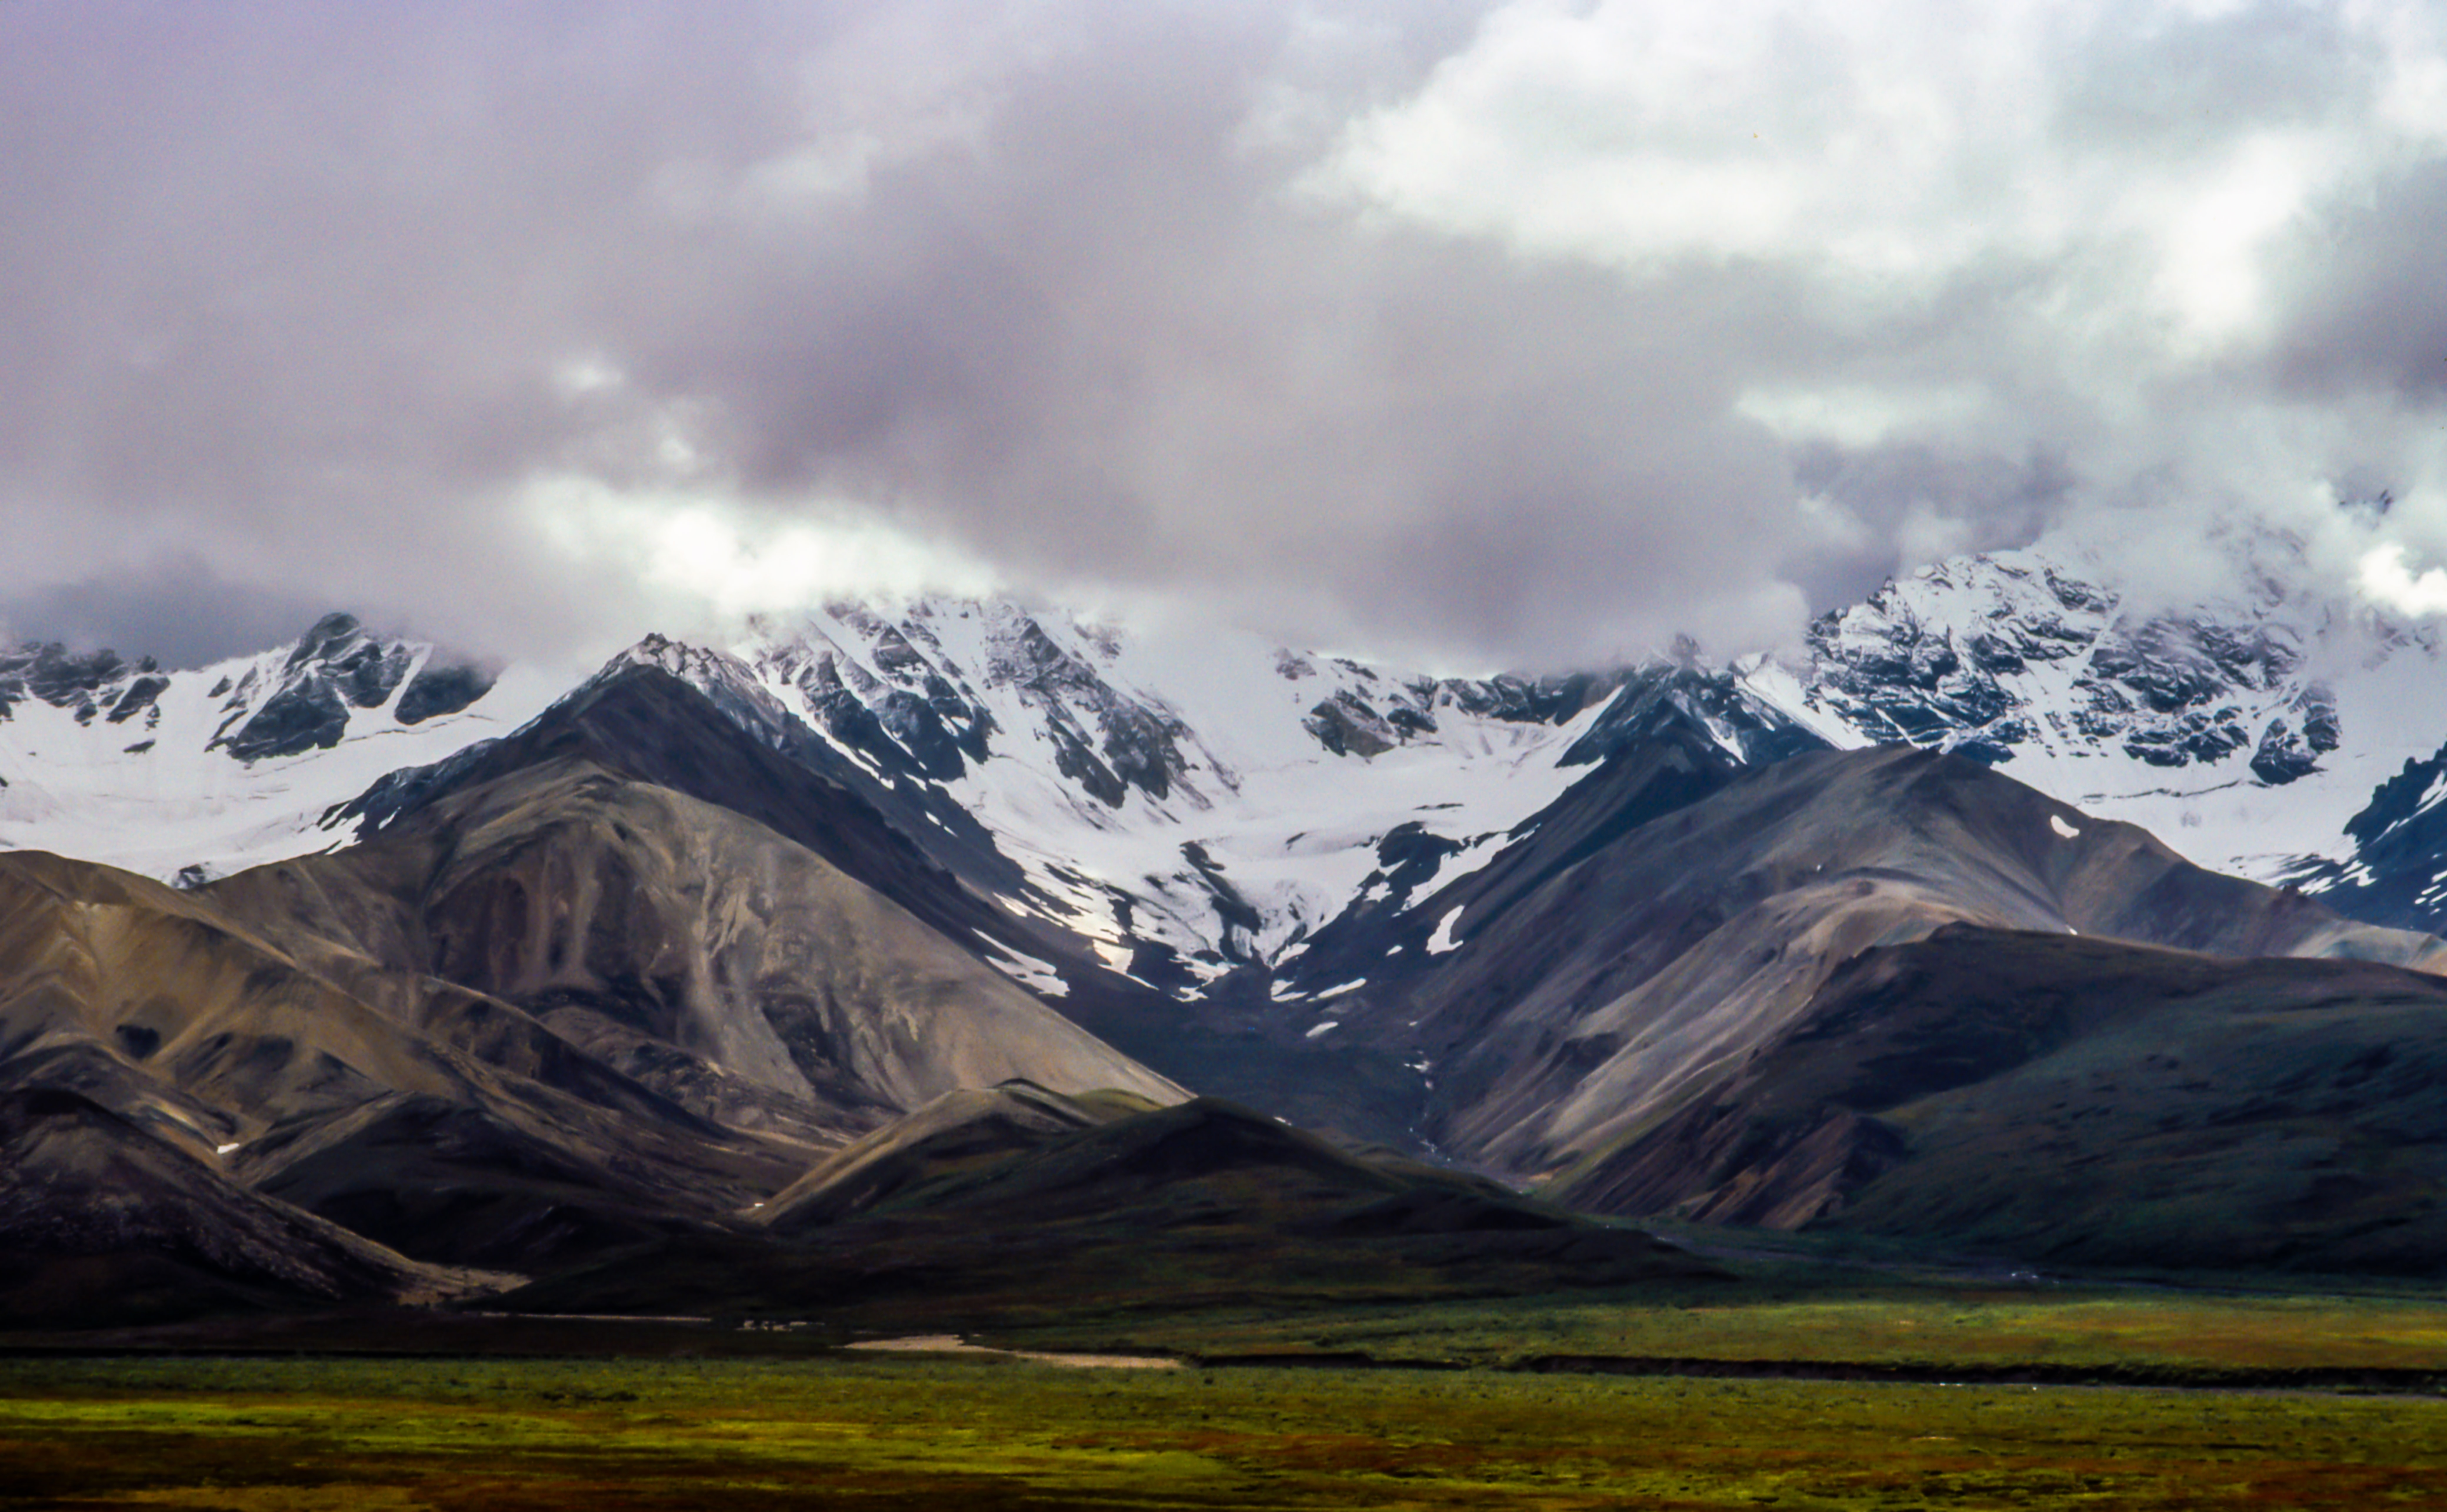 Heavy clouds hover over a snow topped mountain range